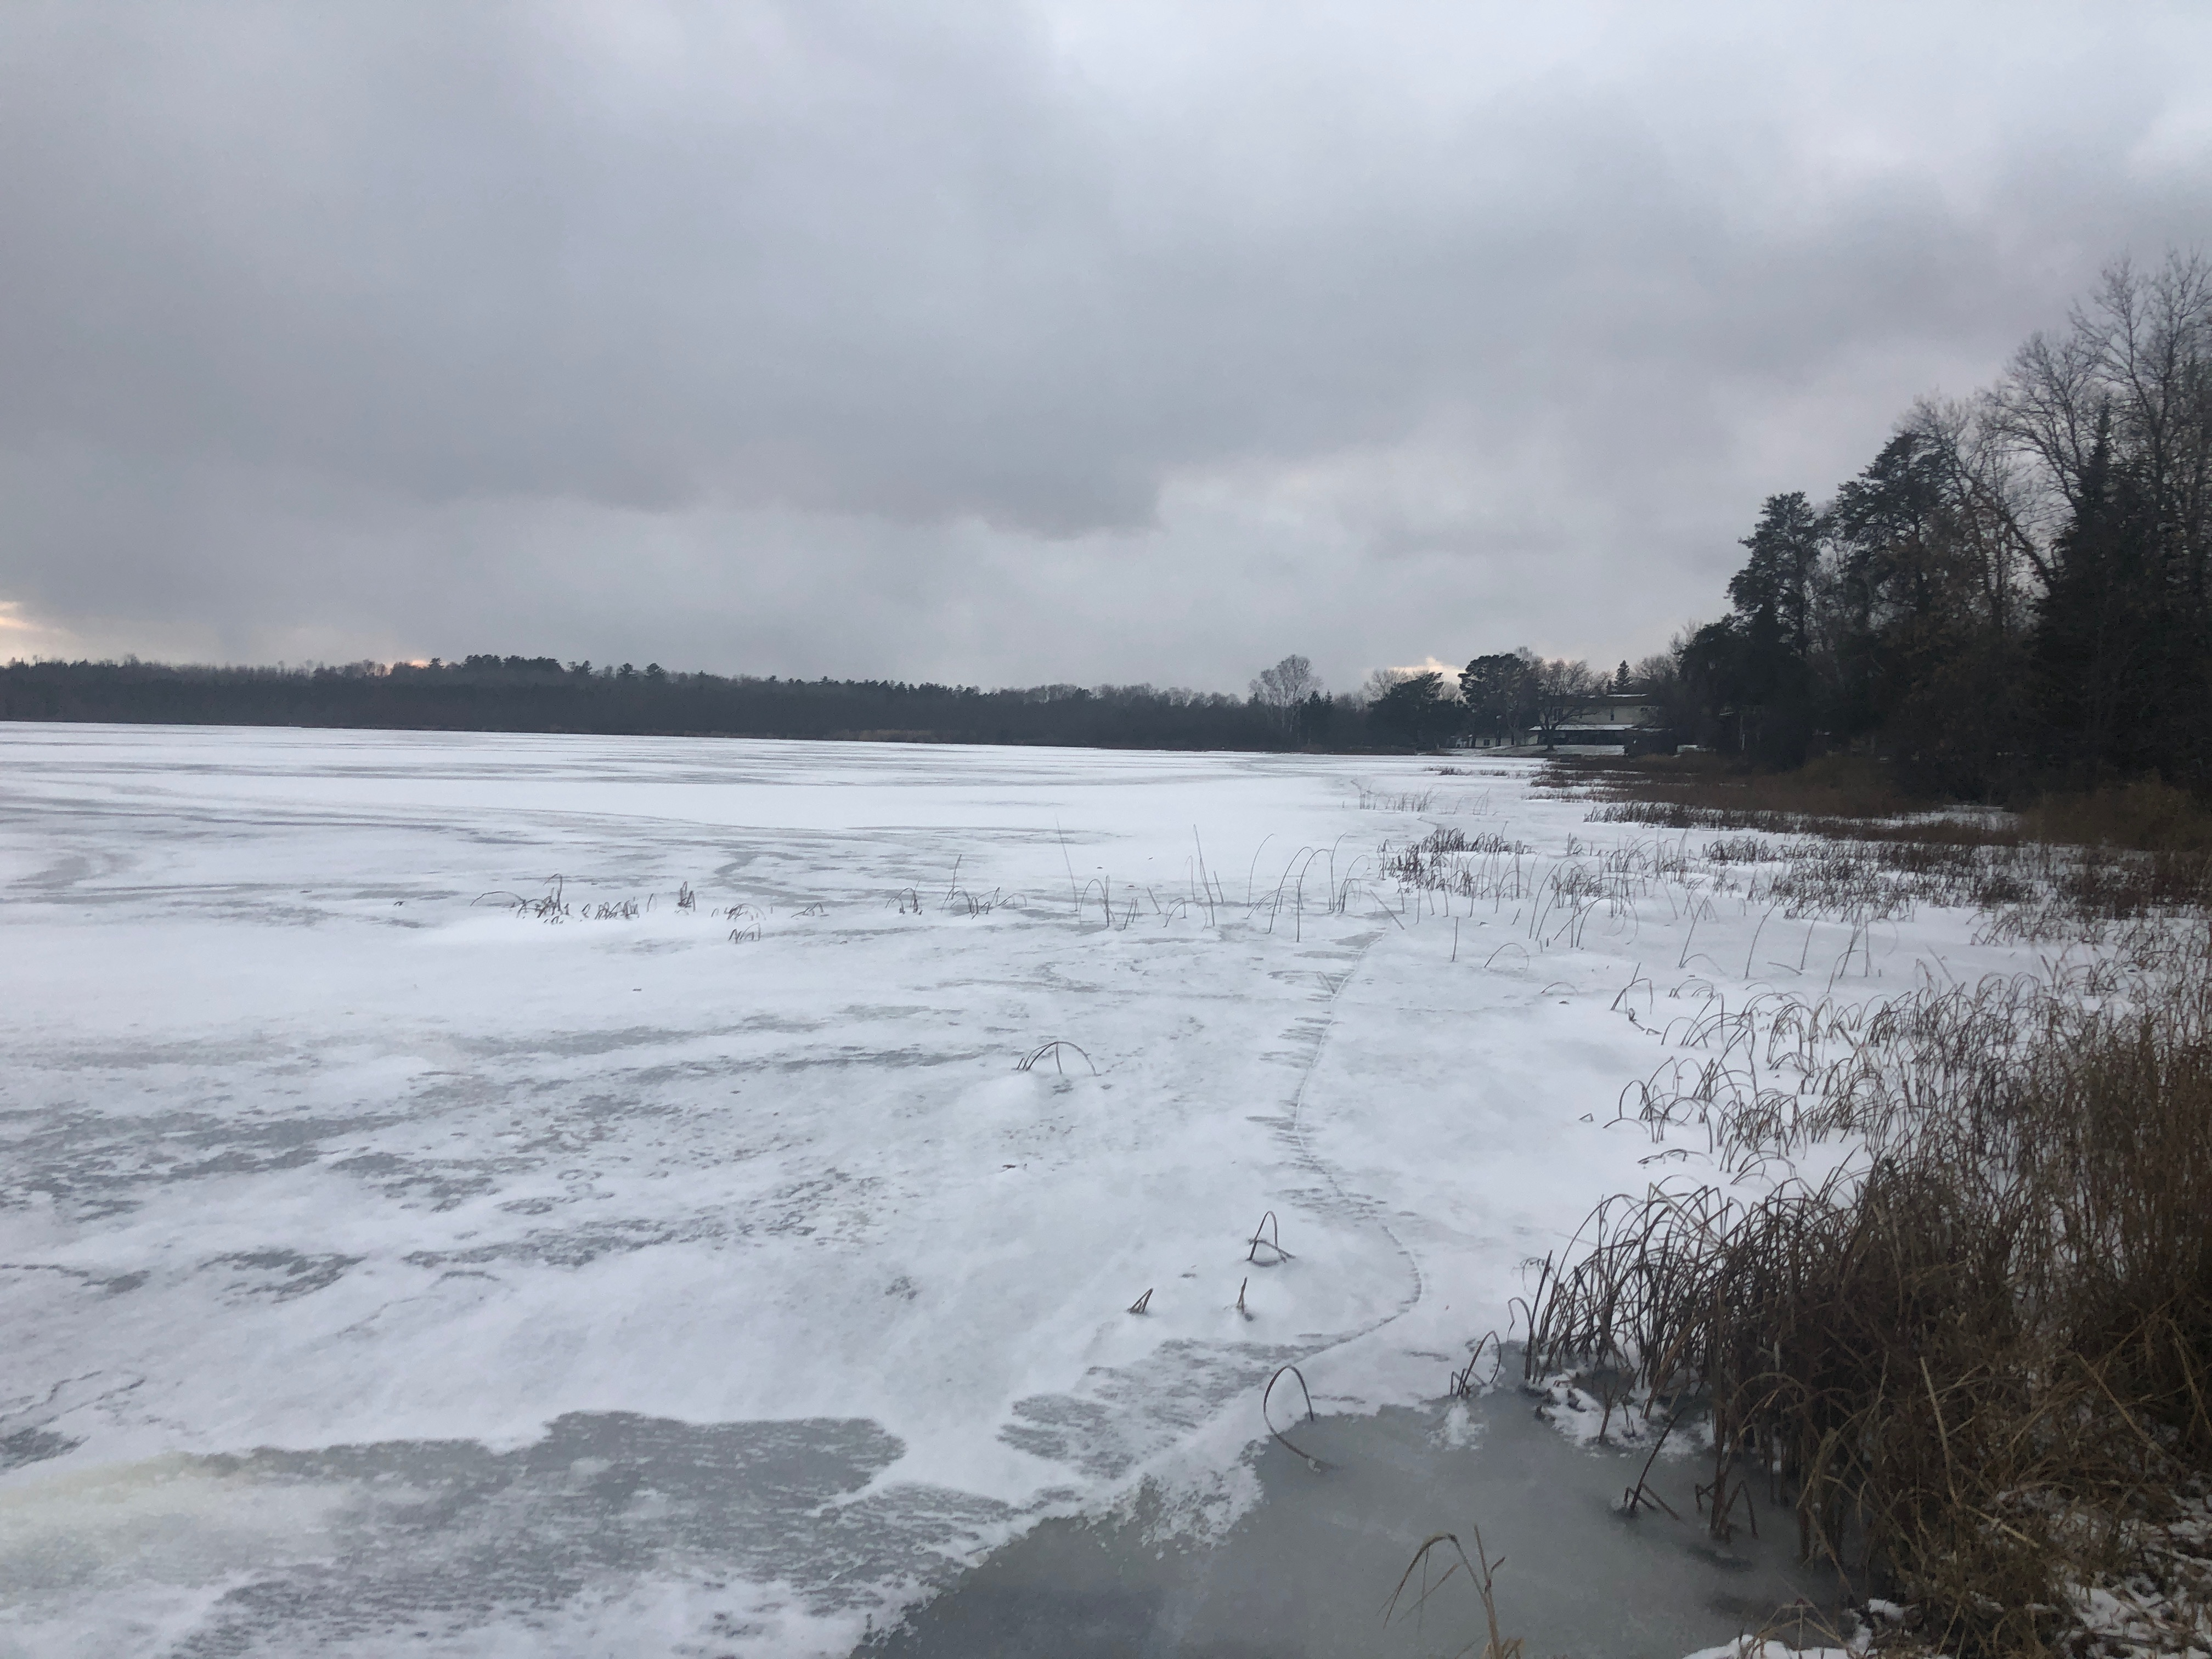 Ice cover on Everett Bay on Lake Vermilion